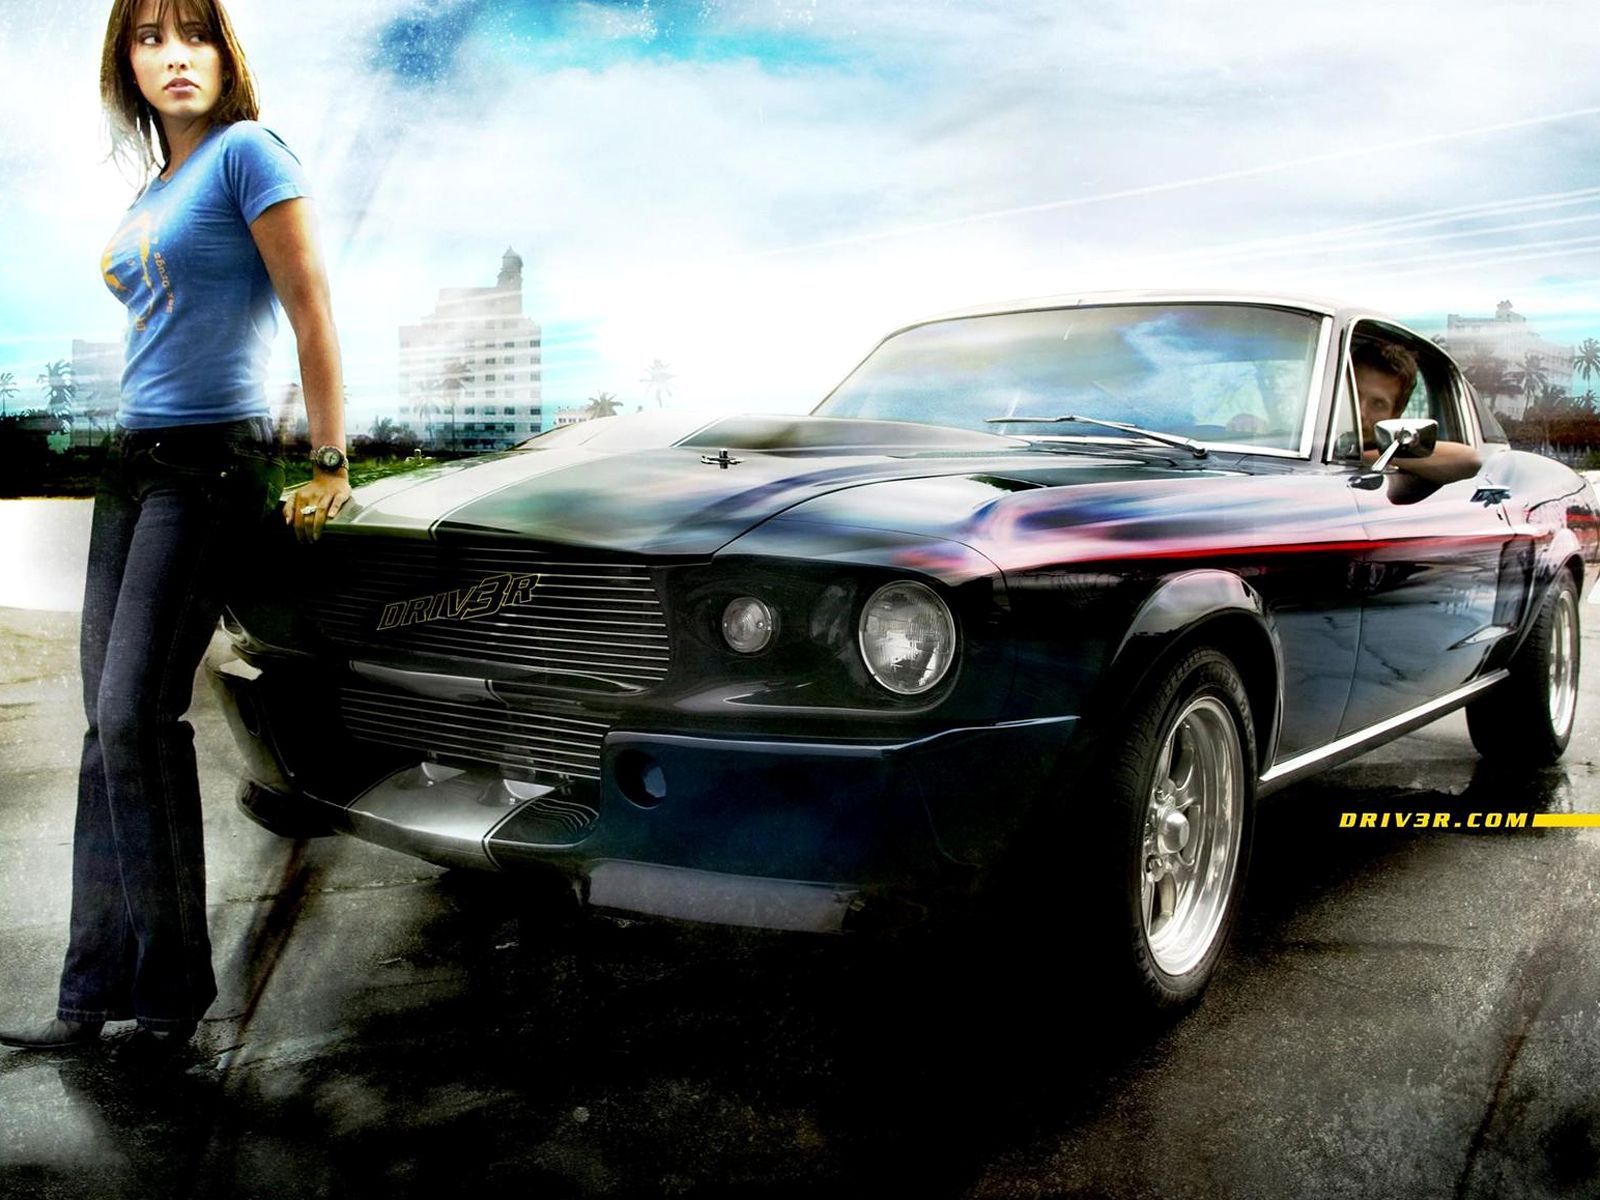 Beautful PC Wallpapers: USA Cars Ads With